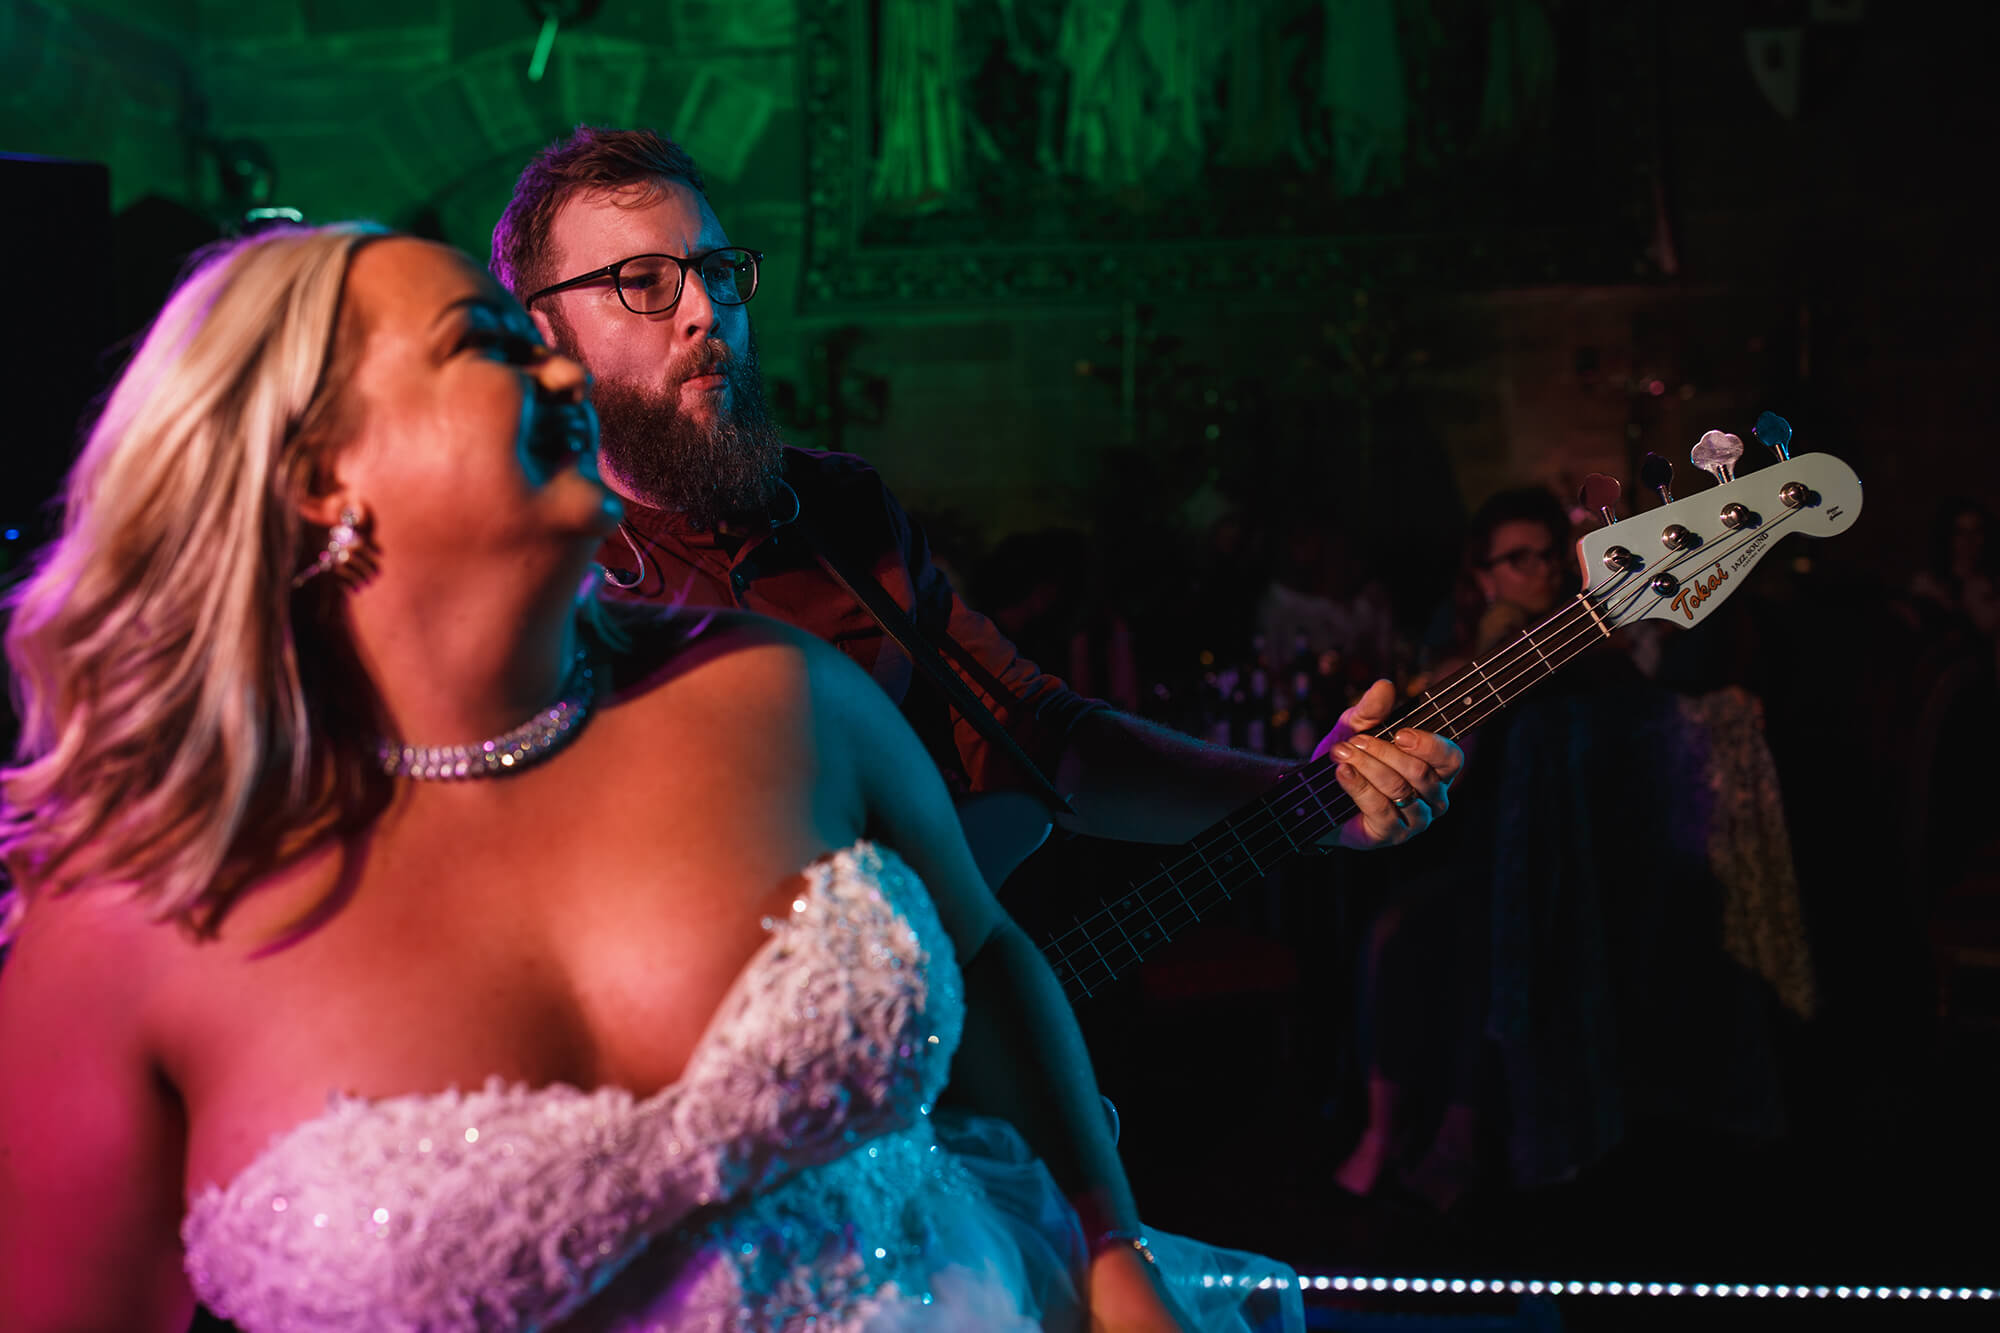 bride dancing with bass player at wedding